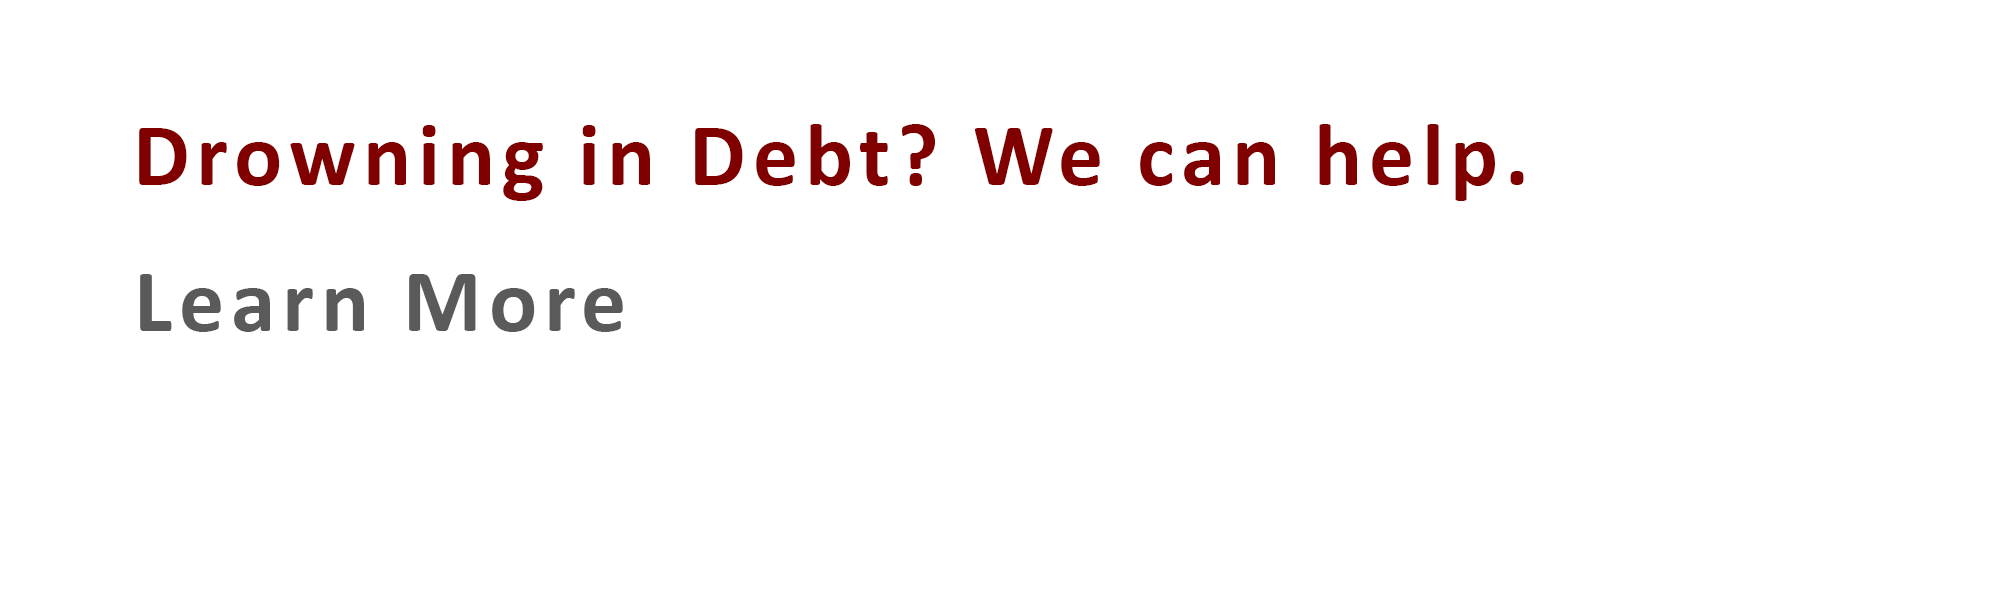 Drowning in Debt? We can help. Learn more.